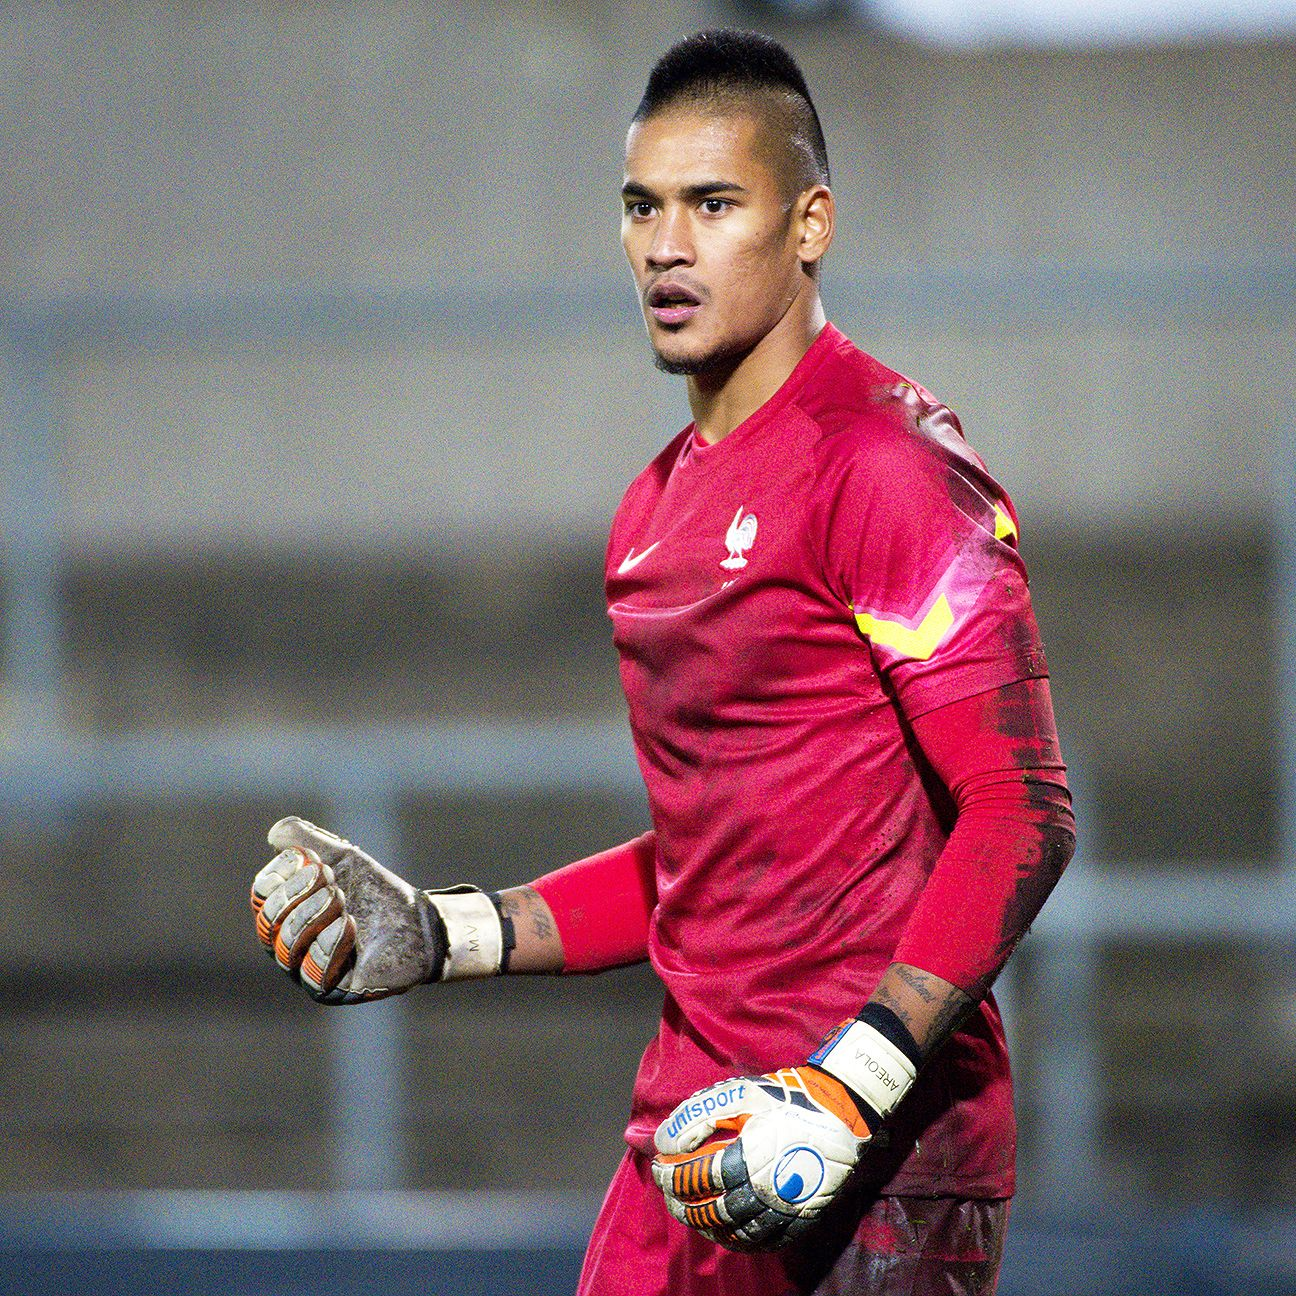 PSG youngster Alphonse Areola will get crucial European experience in 2015-16 at Villarreal.